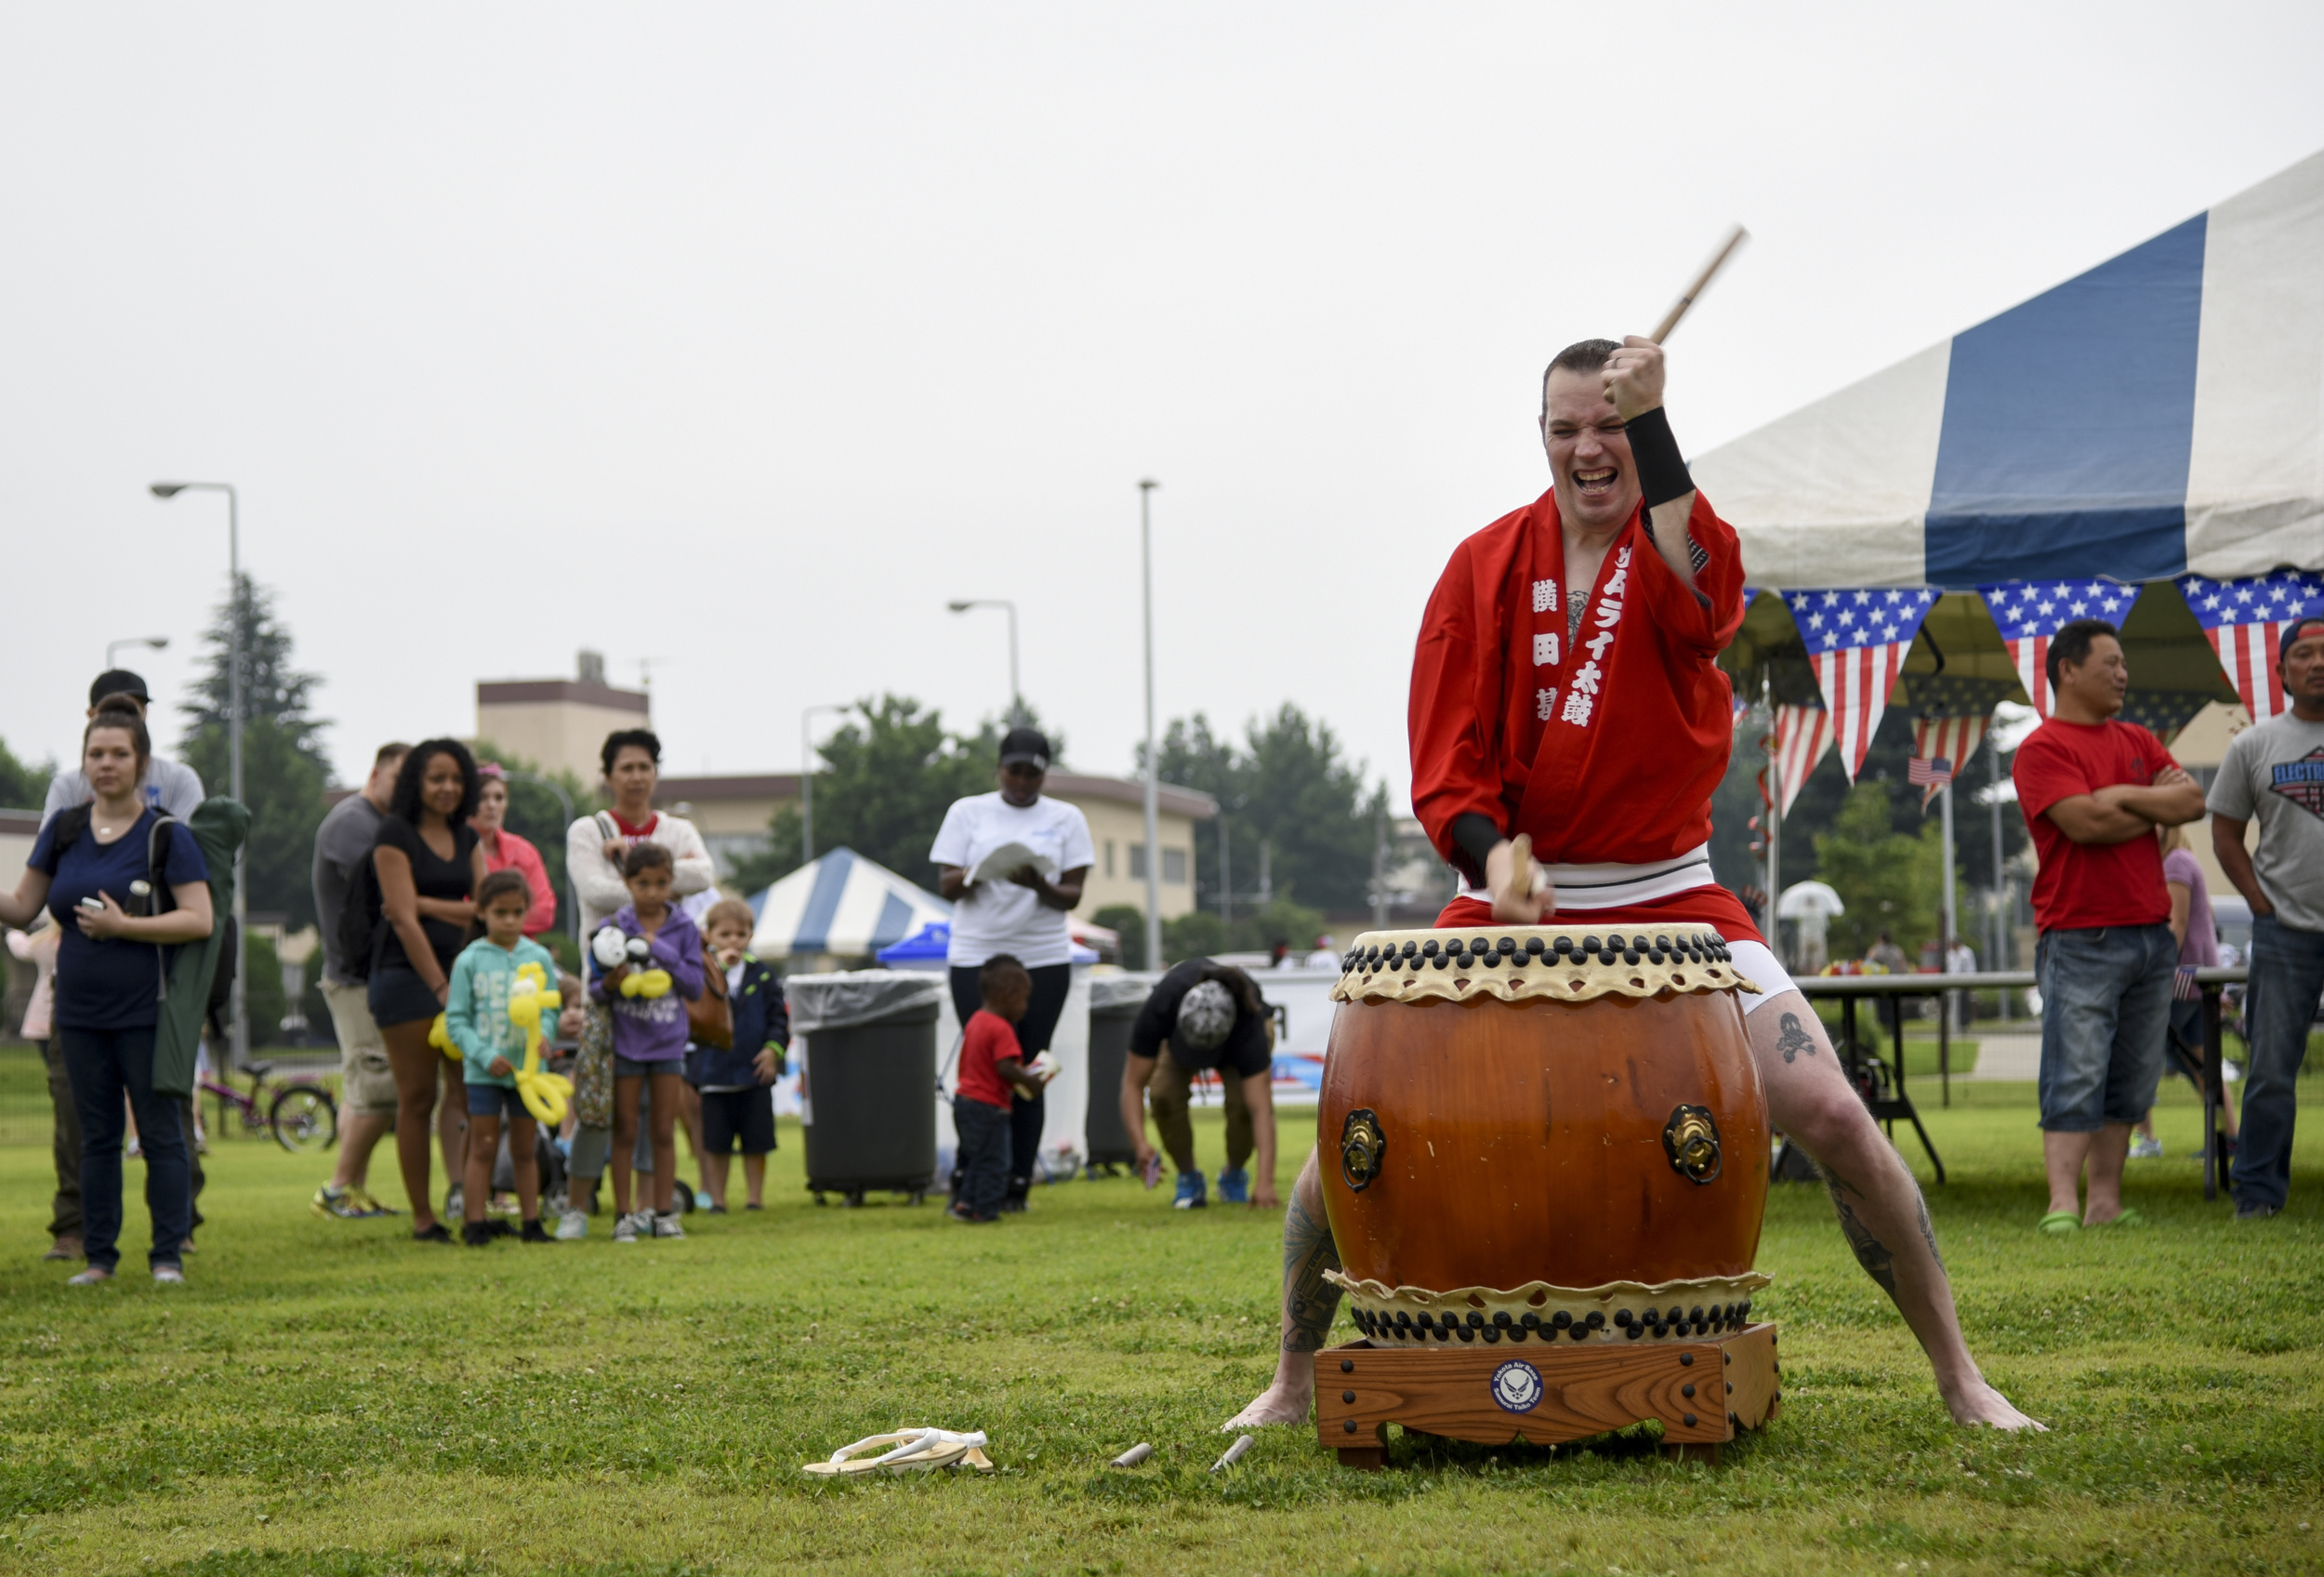 Master Sgt. Casey Hagen, 374th Maintenance Squadron, participates in a Taiko drum performance during Celebrate America at Yokota Air Base, Japan, July 2, 2015. The annual event provided military members and their families the opportunity to enjoy games, food and bands before culminating in a fireworks display to celebrate Independence Day. (U.S. Air Force photo by Senior Airman Michael Washburn/Released)